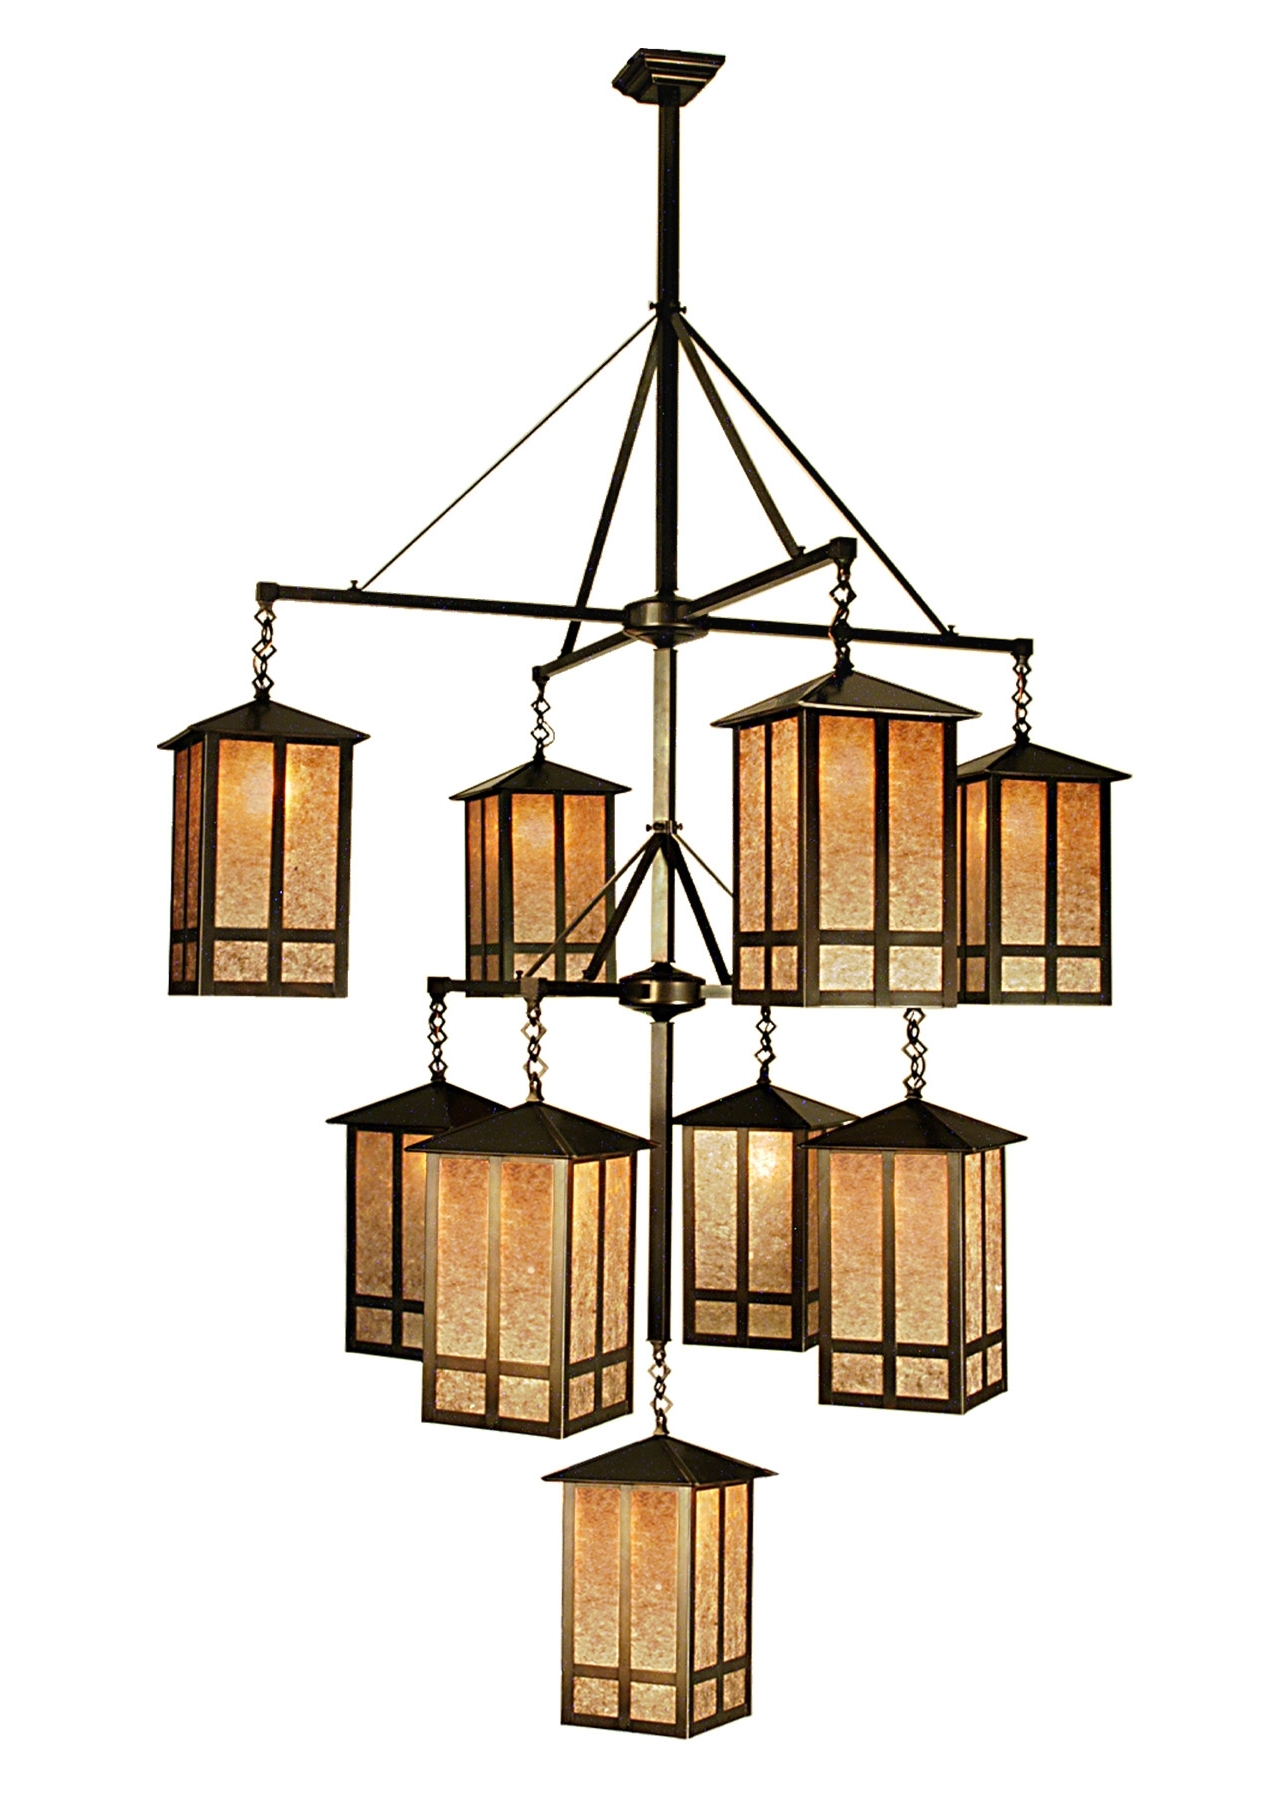 Indoor Lantern Chandelier Pertaining To Famous Lantern Chandelier Lighting – Chandelier Designs (Gallery 1 of 15)